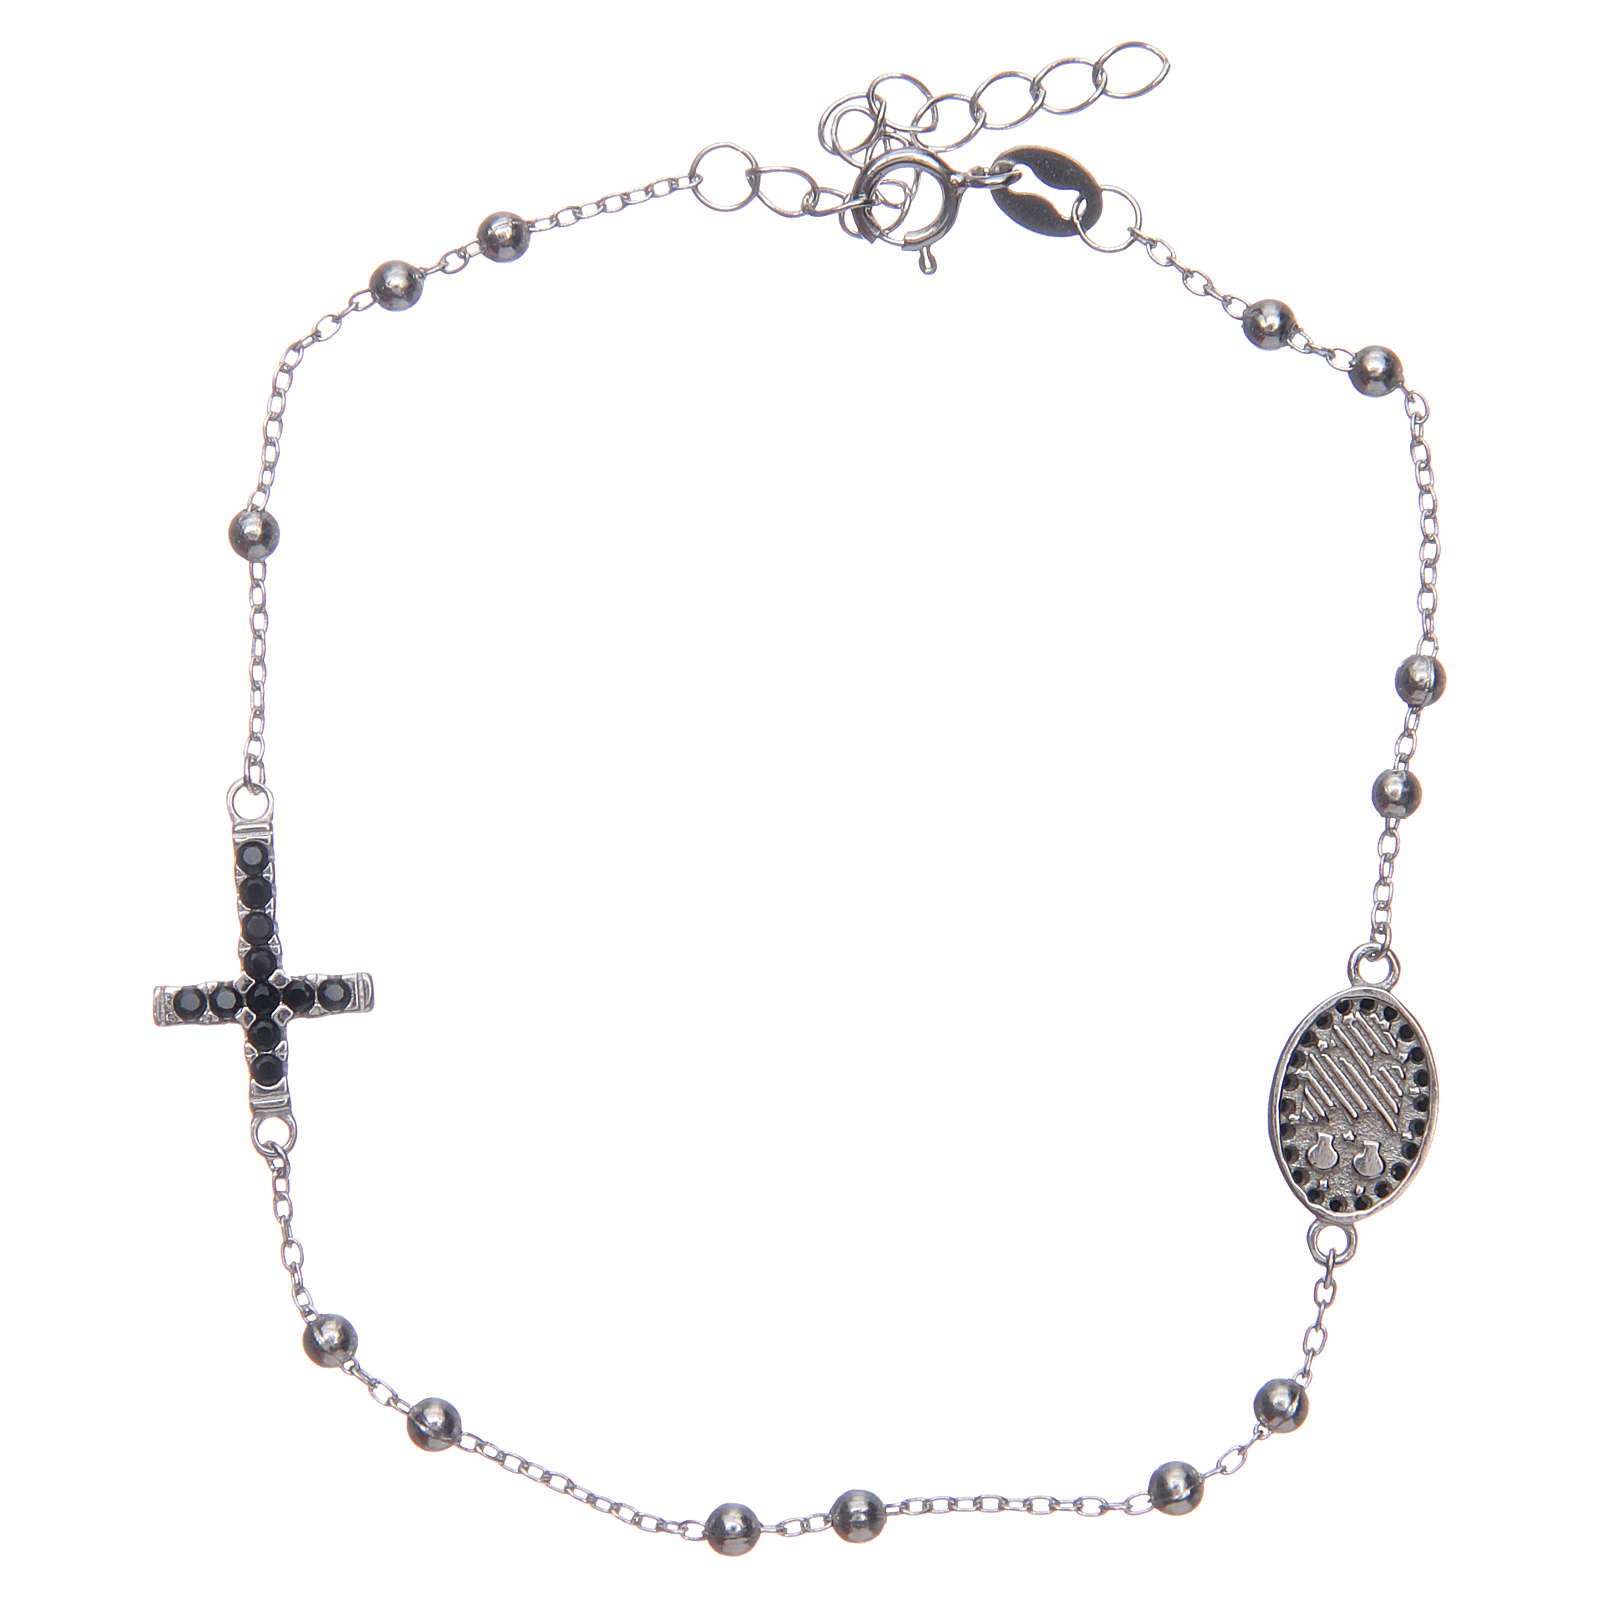 Dozen rosary bracelet Santa Zita silver with black zircons in 925 sterling silver 4